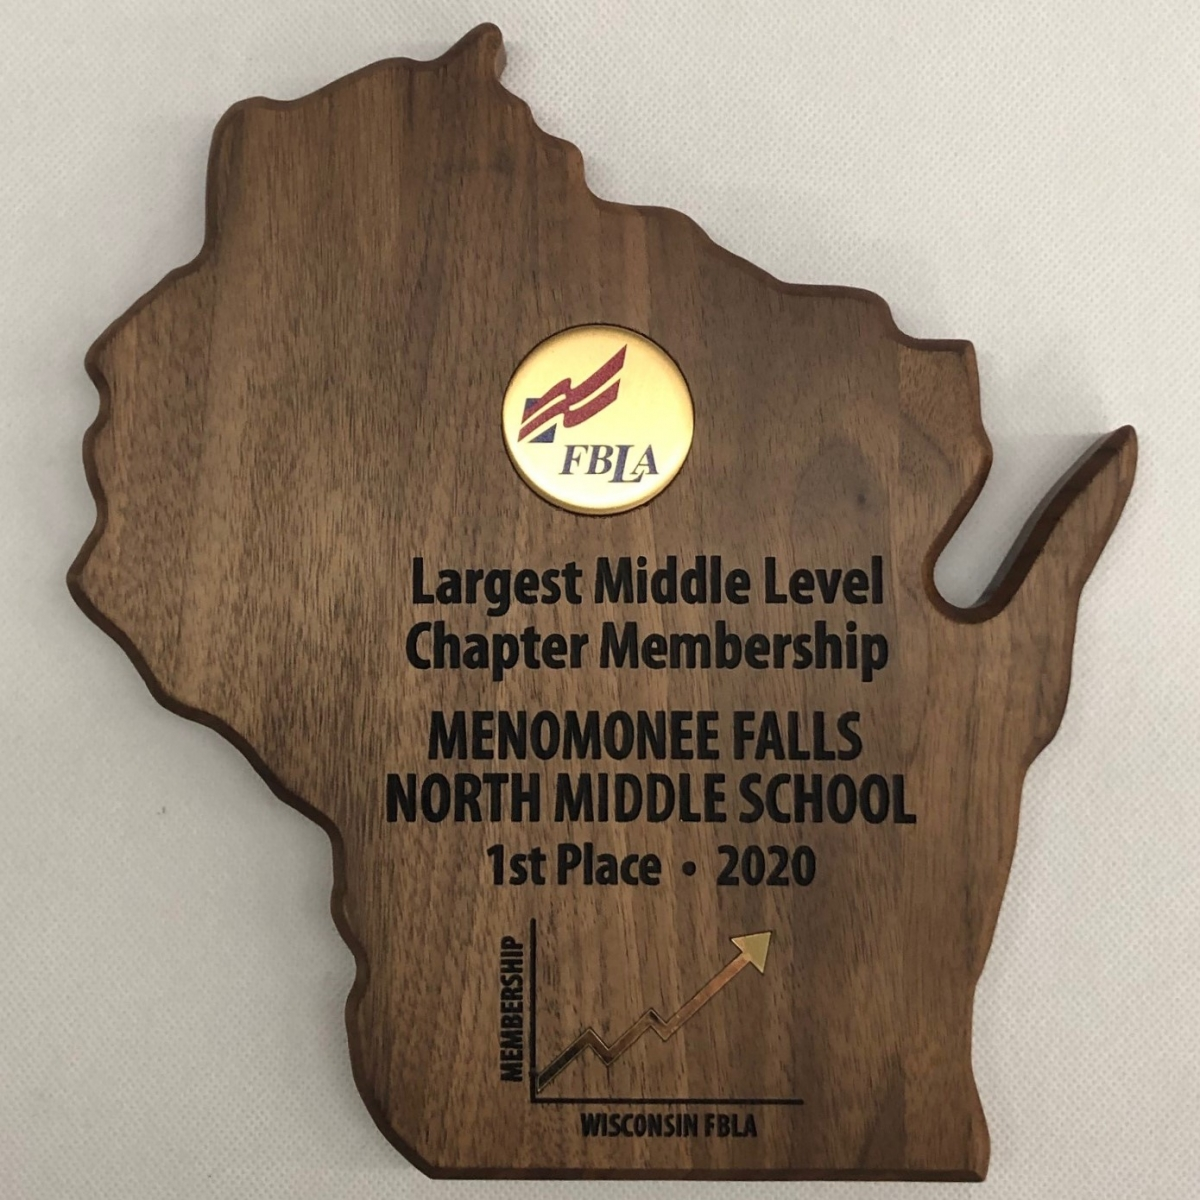 Largest Middle Level Chapter - Menomonee Falls North